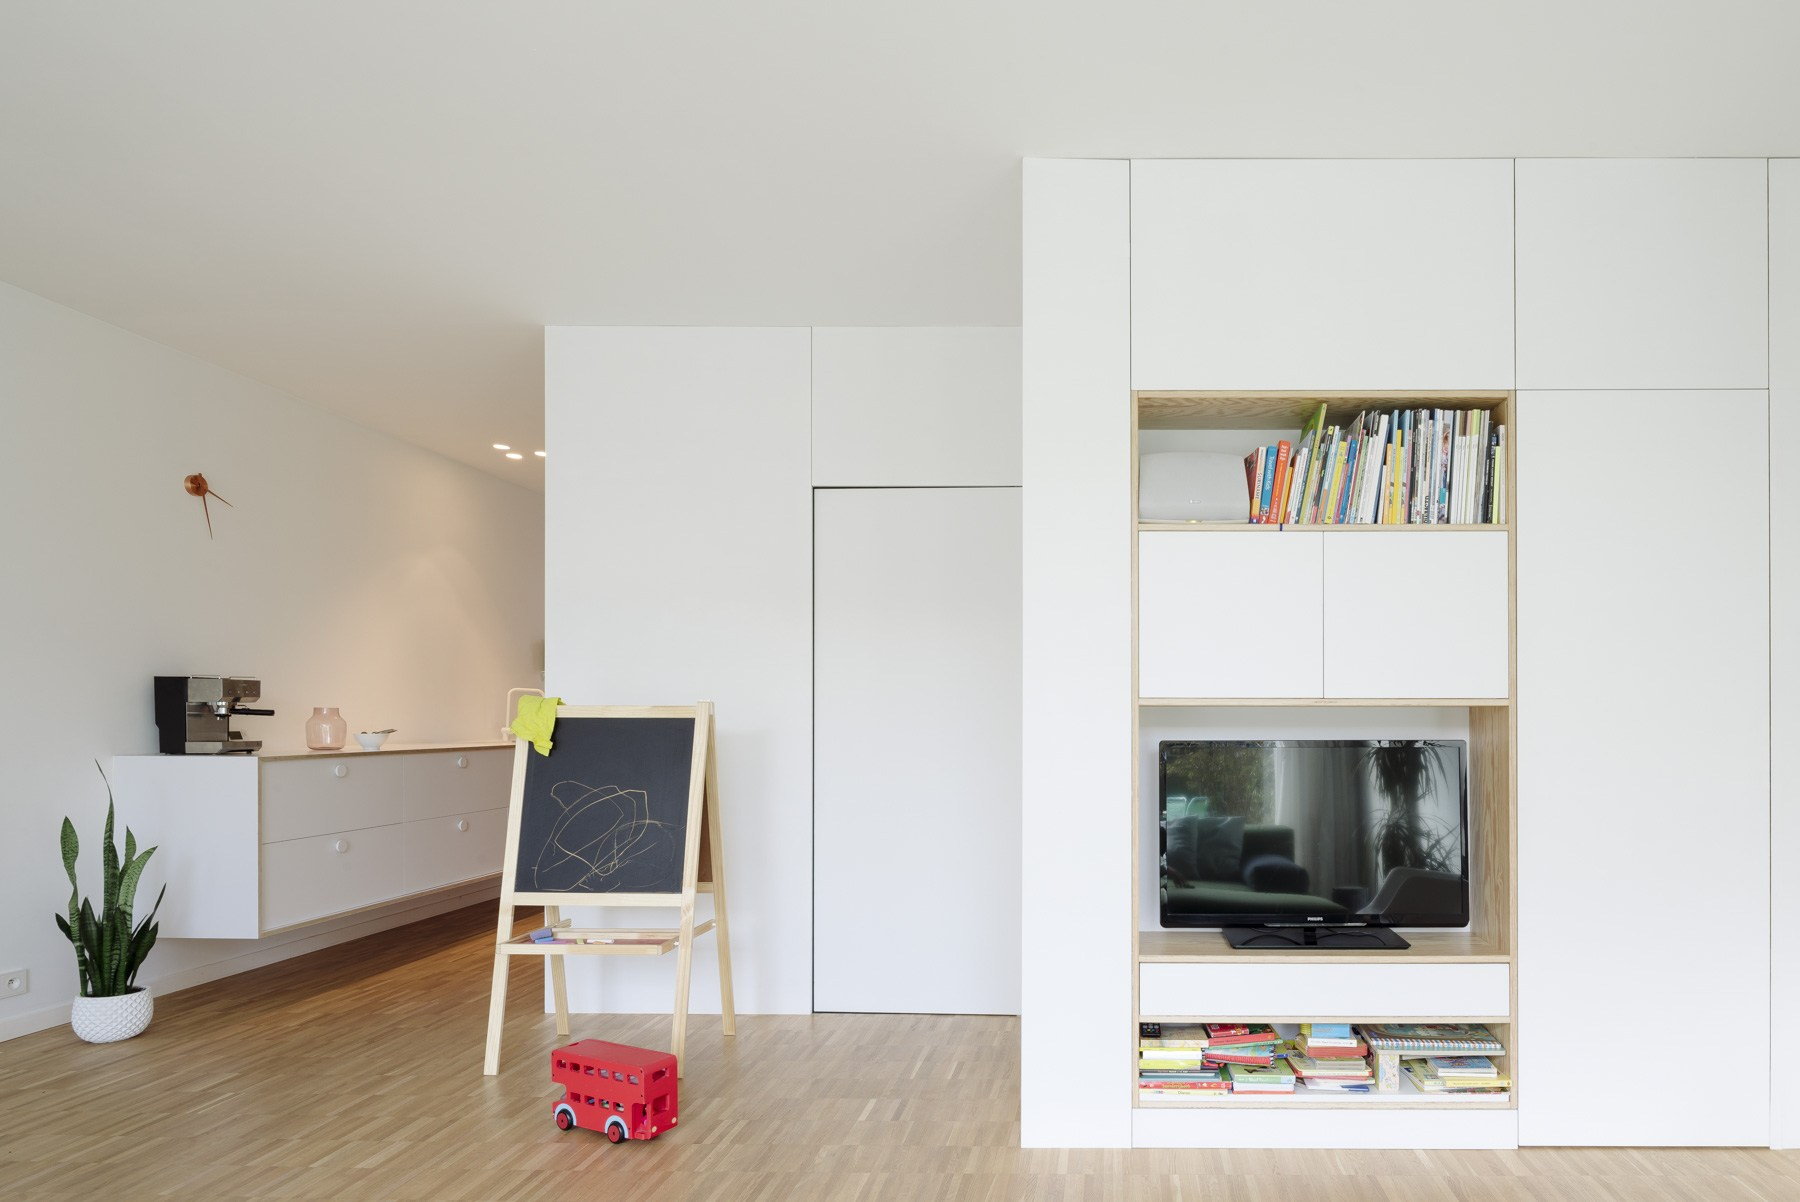 interieur house interbella friday office for architecture foto door olmo peeters